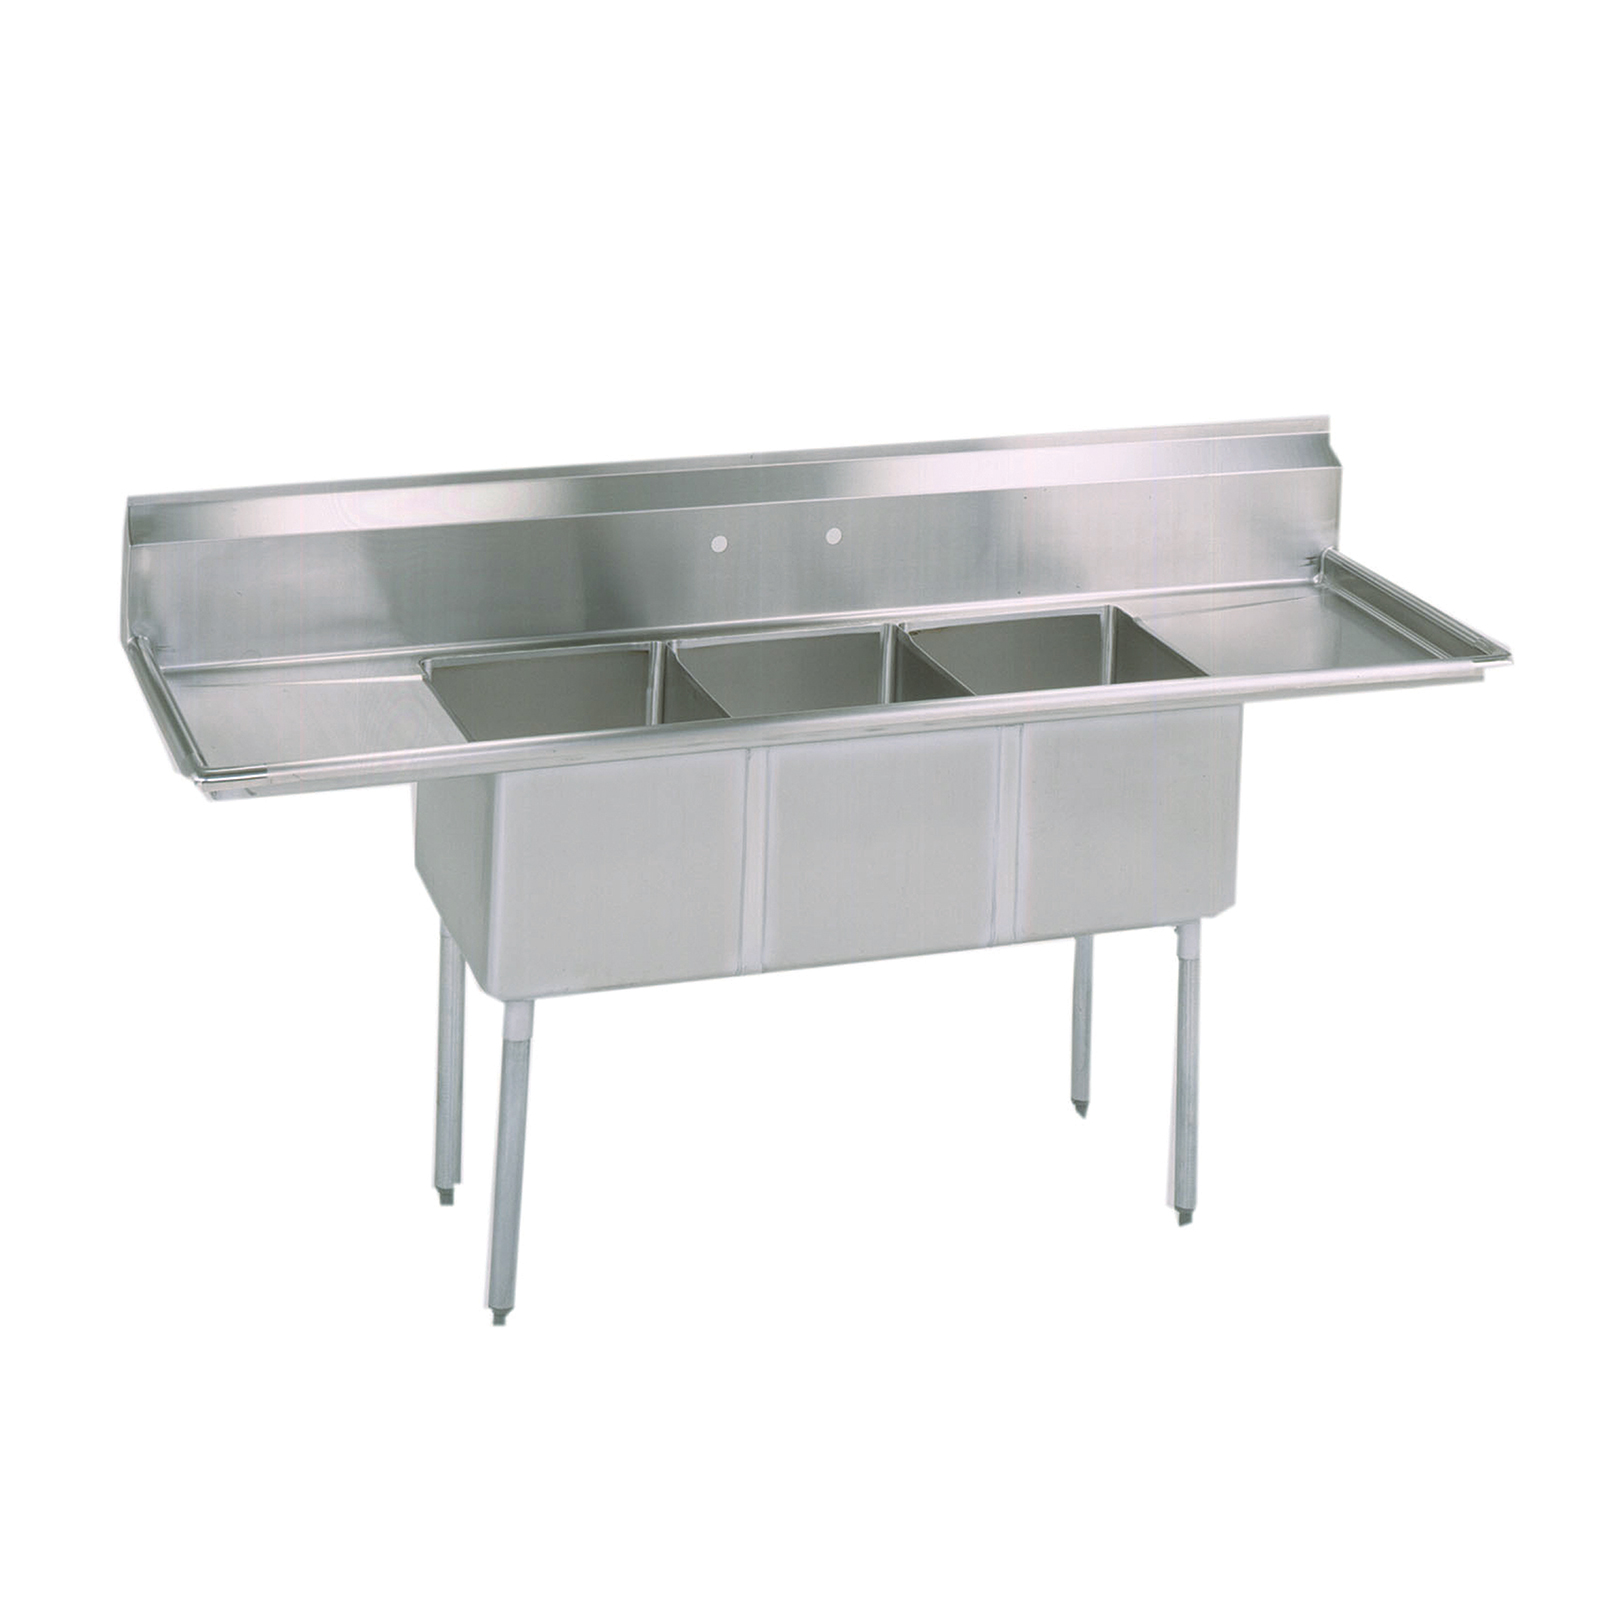 BK Resources BKS-3-2030-12-20T sink, (3) three compartment